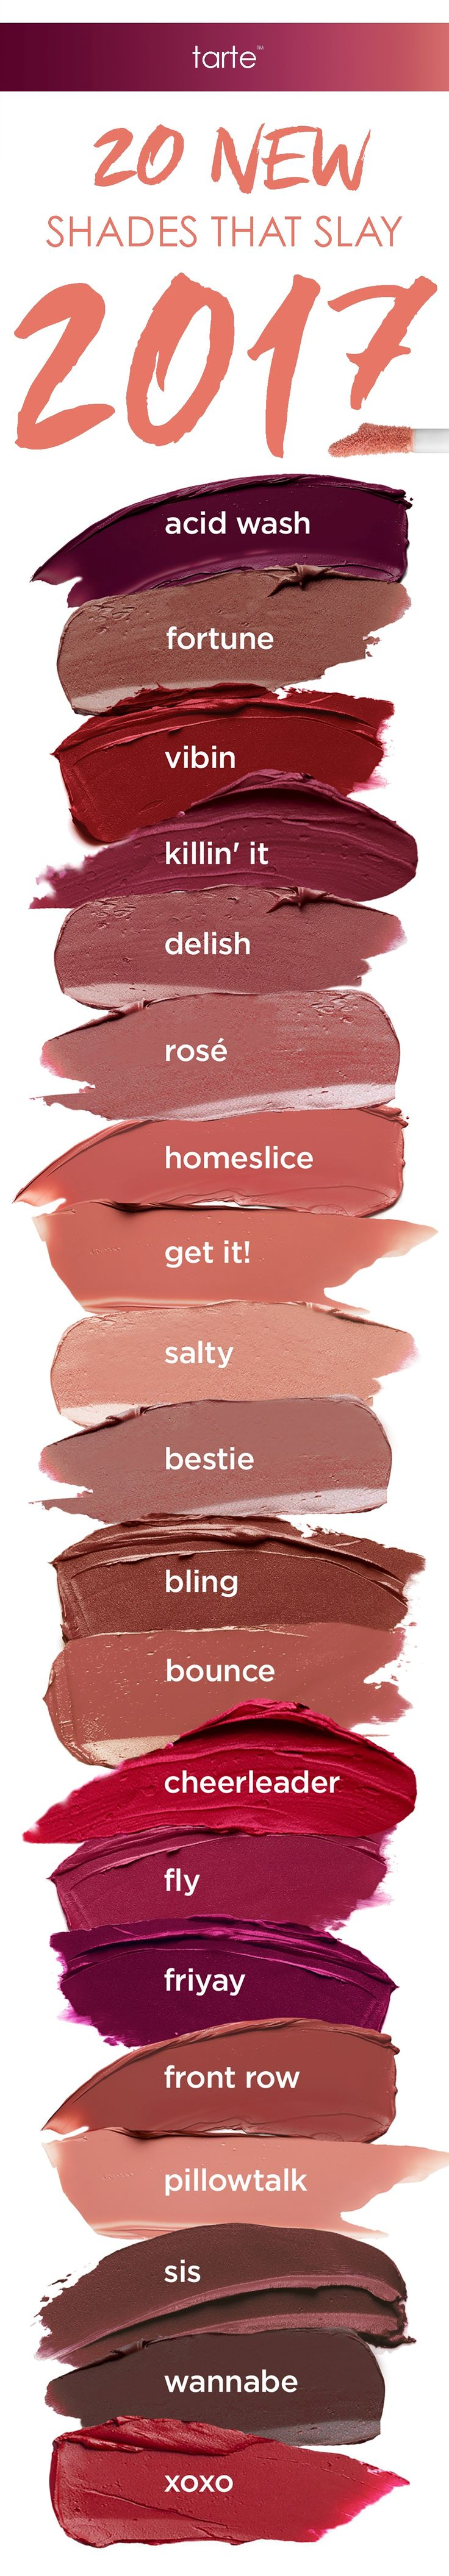 Eat and drink with no transferring while wearing our NEW tarteist™ quick dry matte lip paint! Available in 20 different shades for all-day vibrancy and comfortable wear. #tartecosmetics